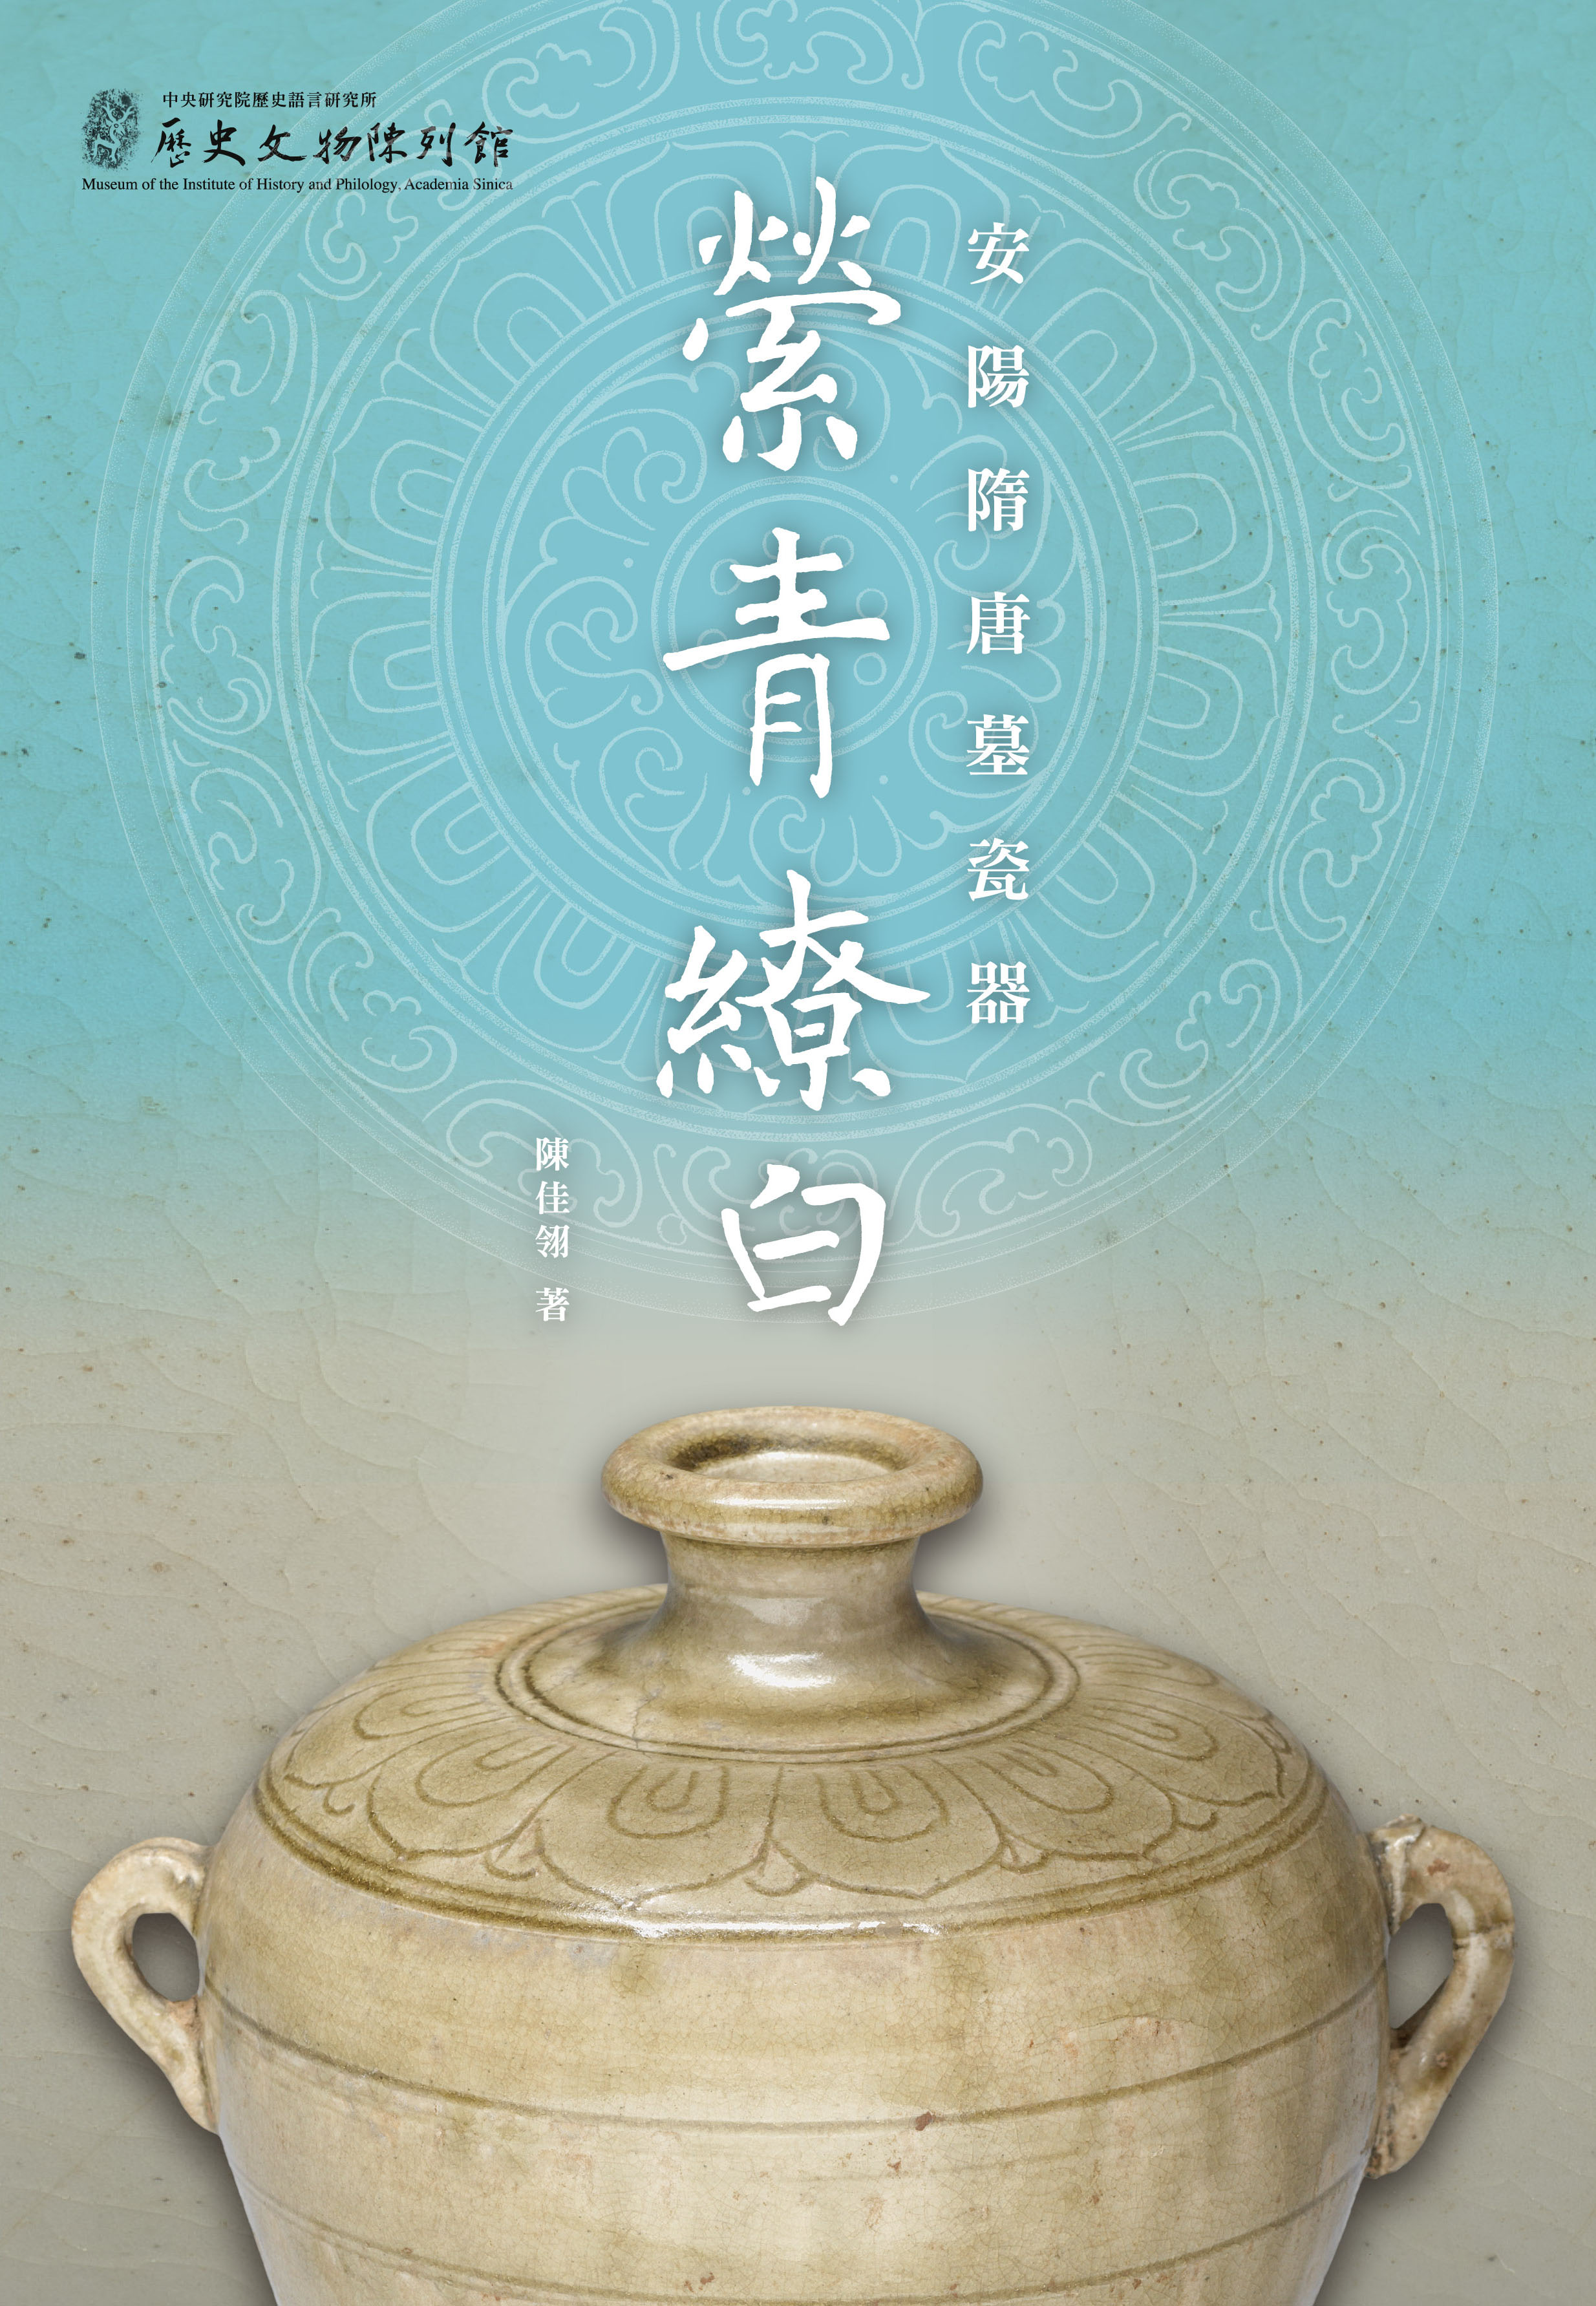 Of Celadon and White: Porcelain Unearthed at the Sui-Tang Period Tombs in Anyang